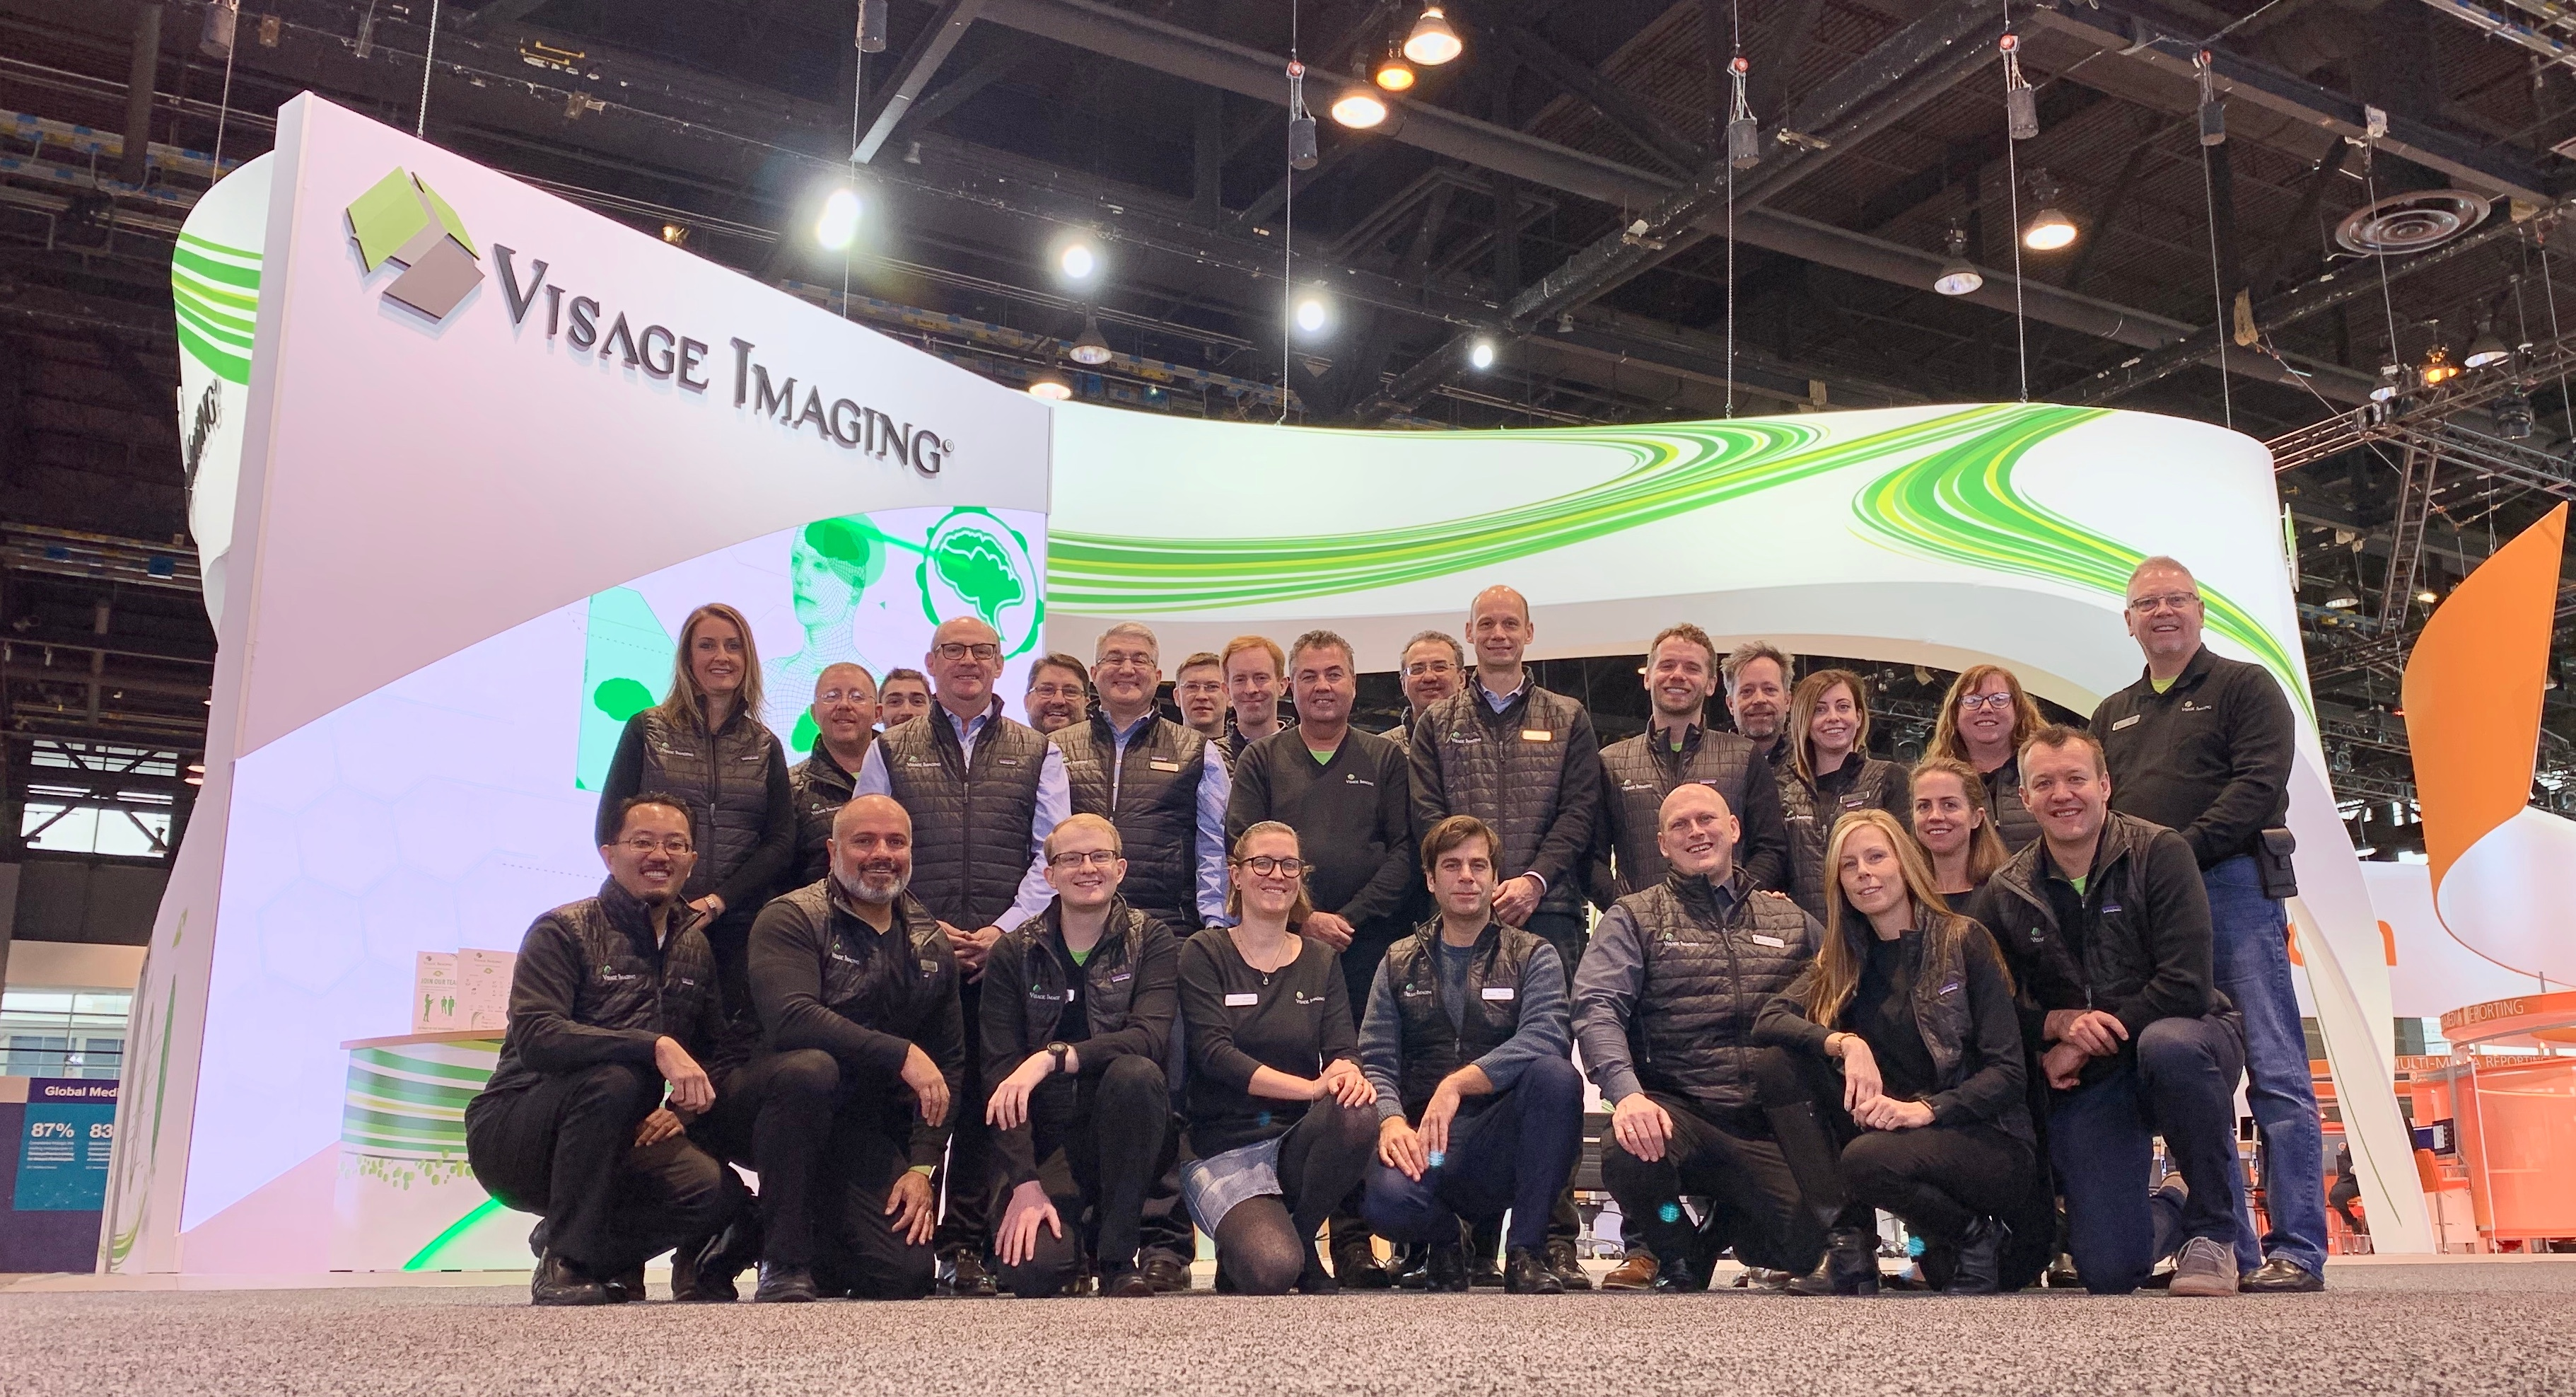 RSNA 2018 Visage Imaging Team